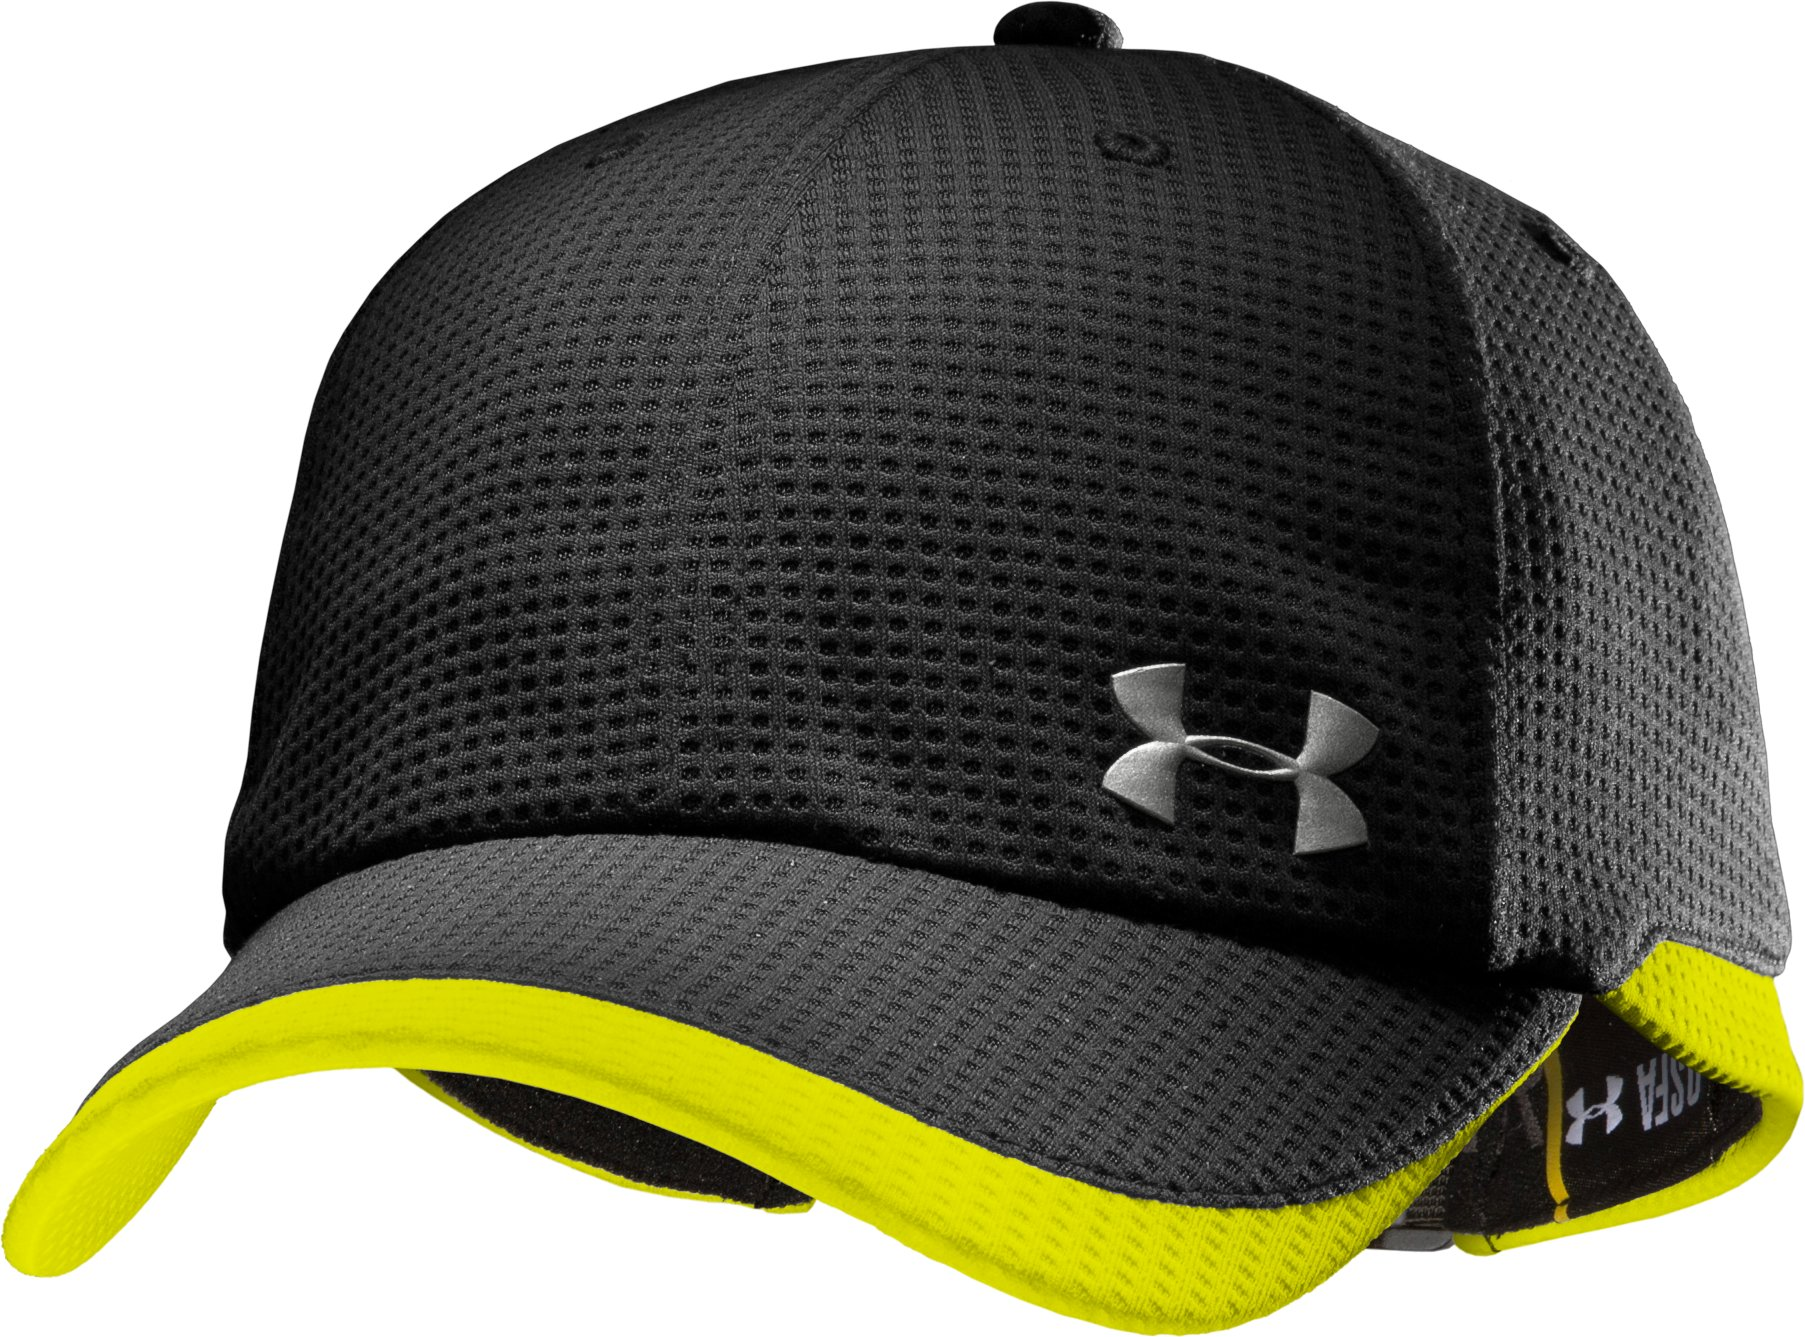 Women's Undeniable Adjustable Cap, Black , zoomed image